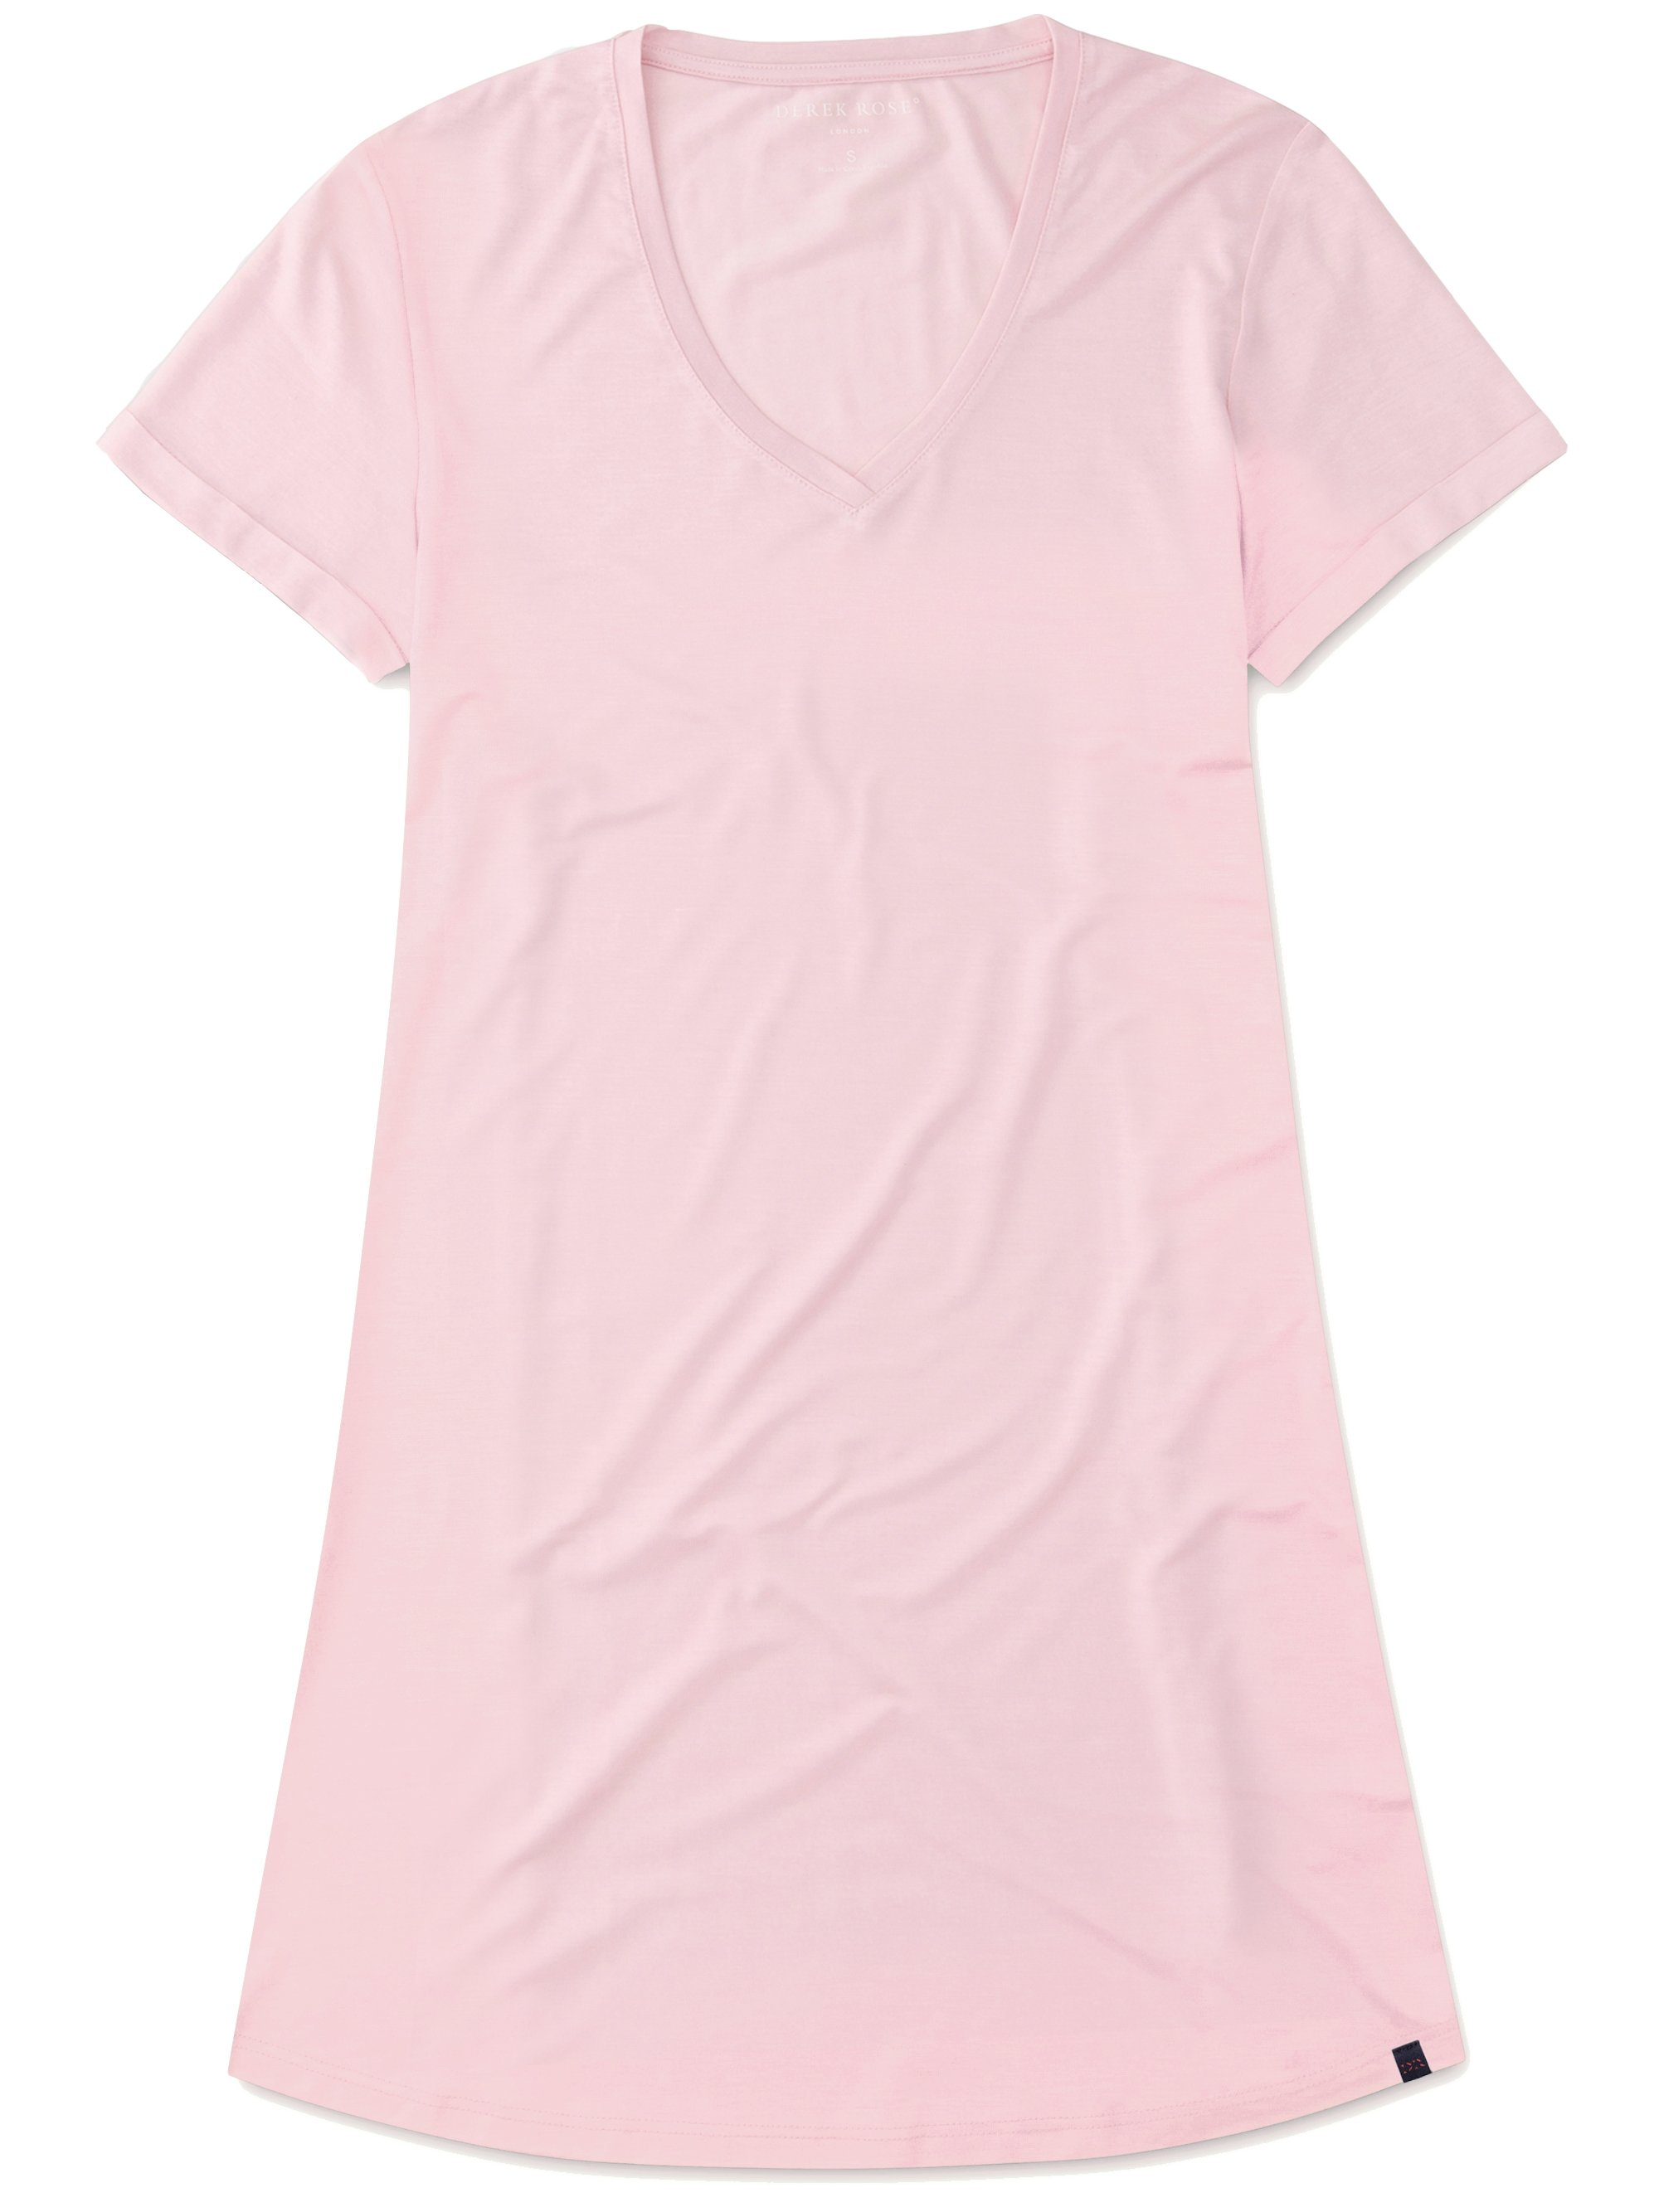 Women's V-Neck Sleep T-Shirt Lara Micro Modal Stretch Pink